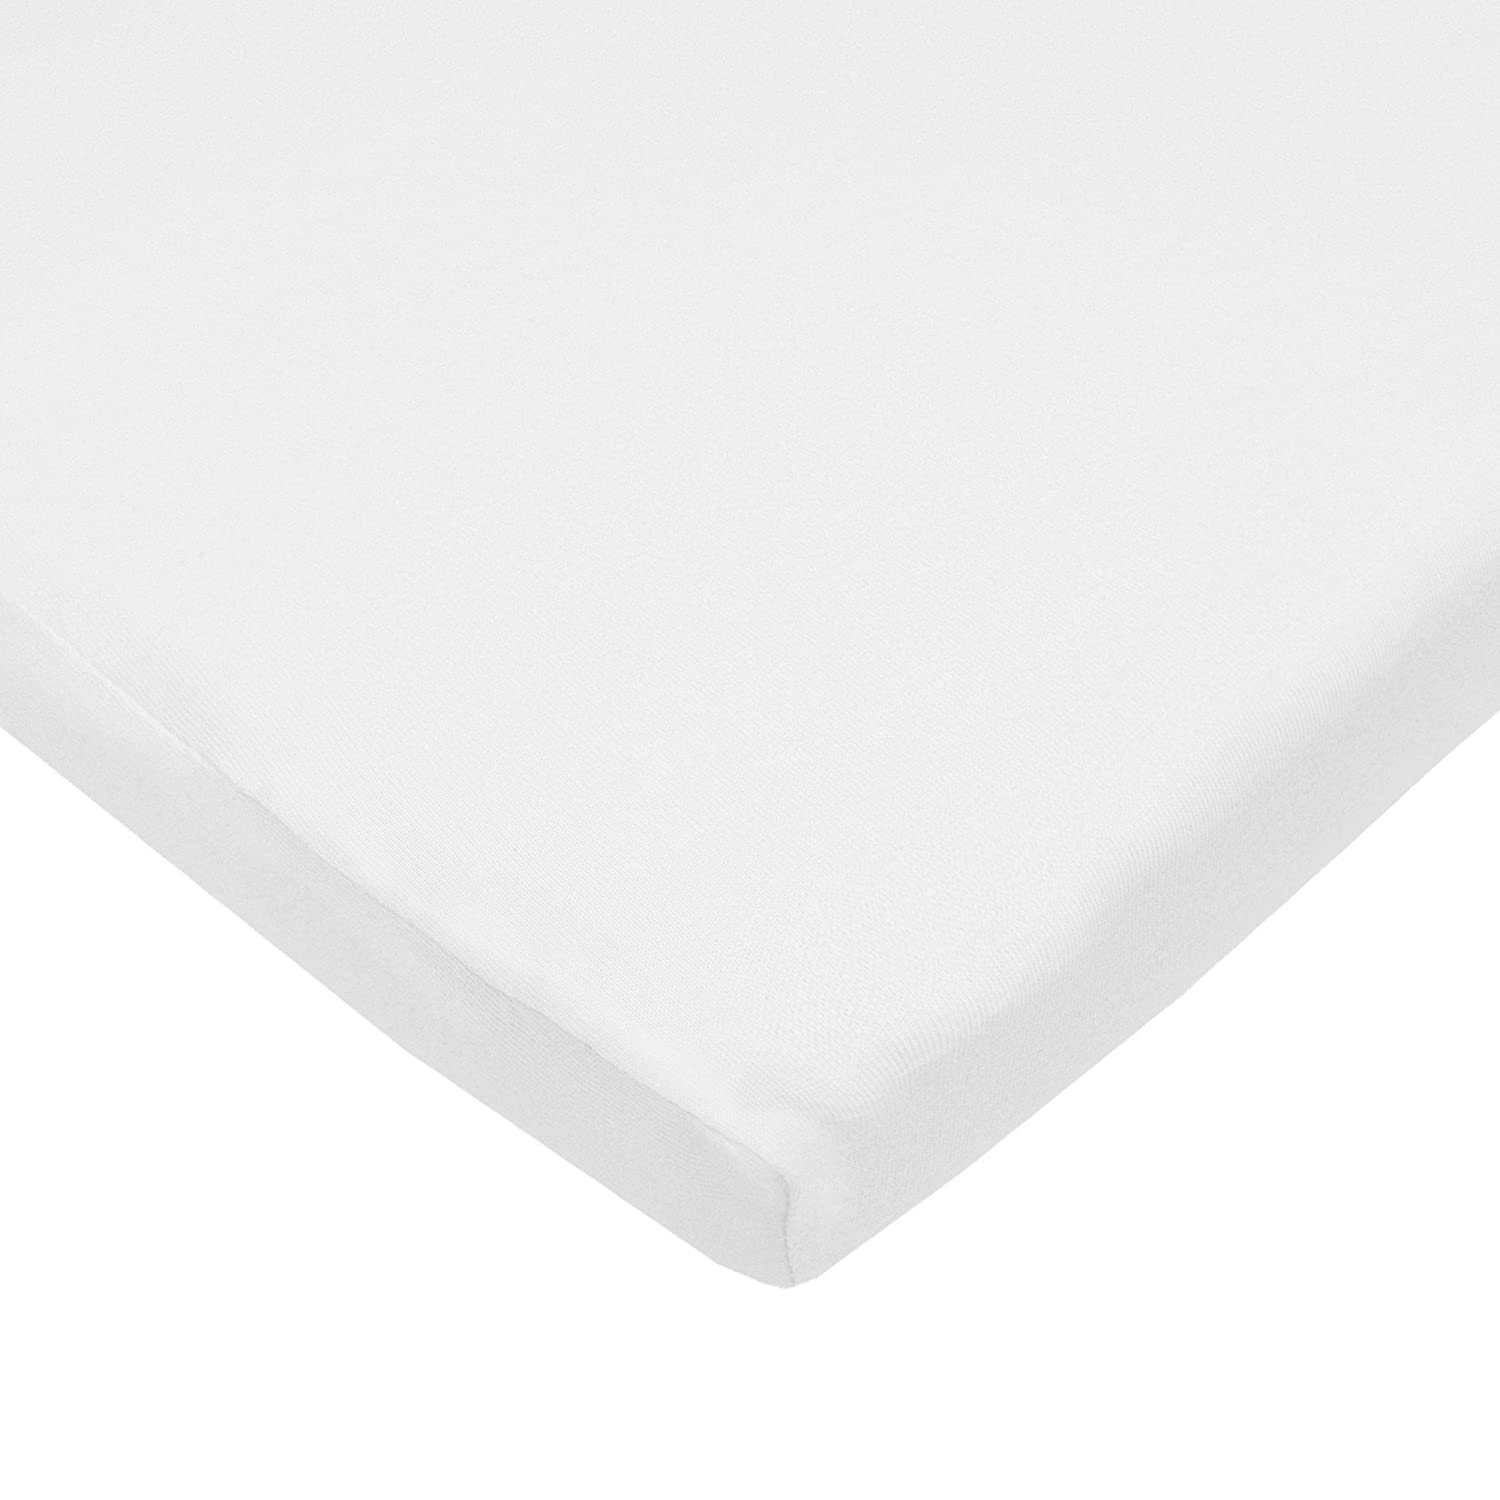 TL Care Supreme 100/% Natural Cotton Jersey Knit Fitted Cradle Sheet for Boys and Girls Maize Soft Breathable